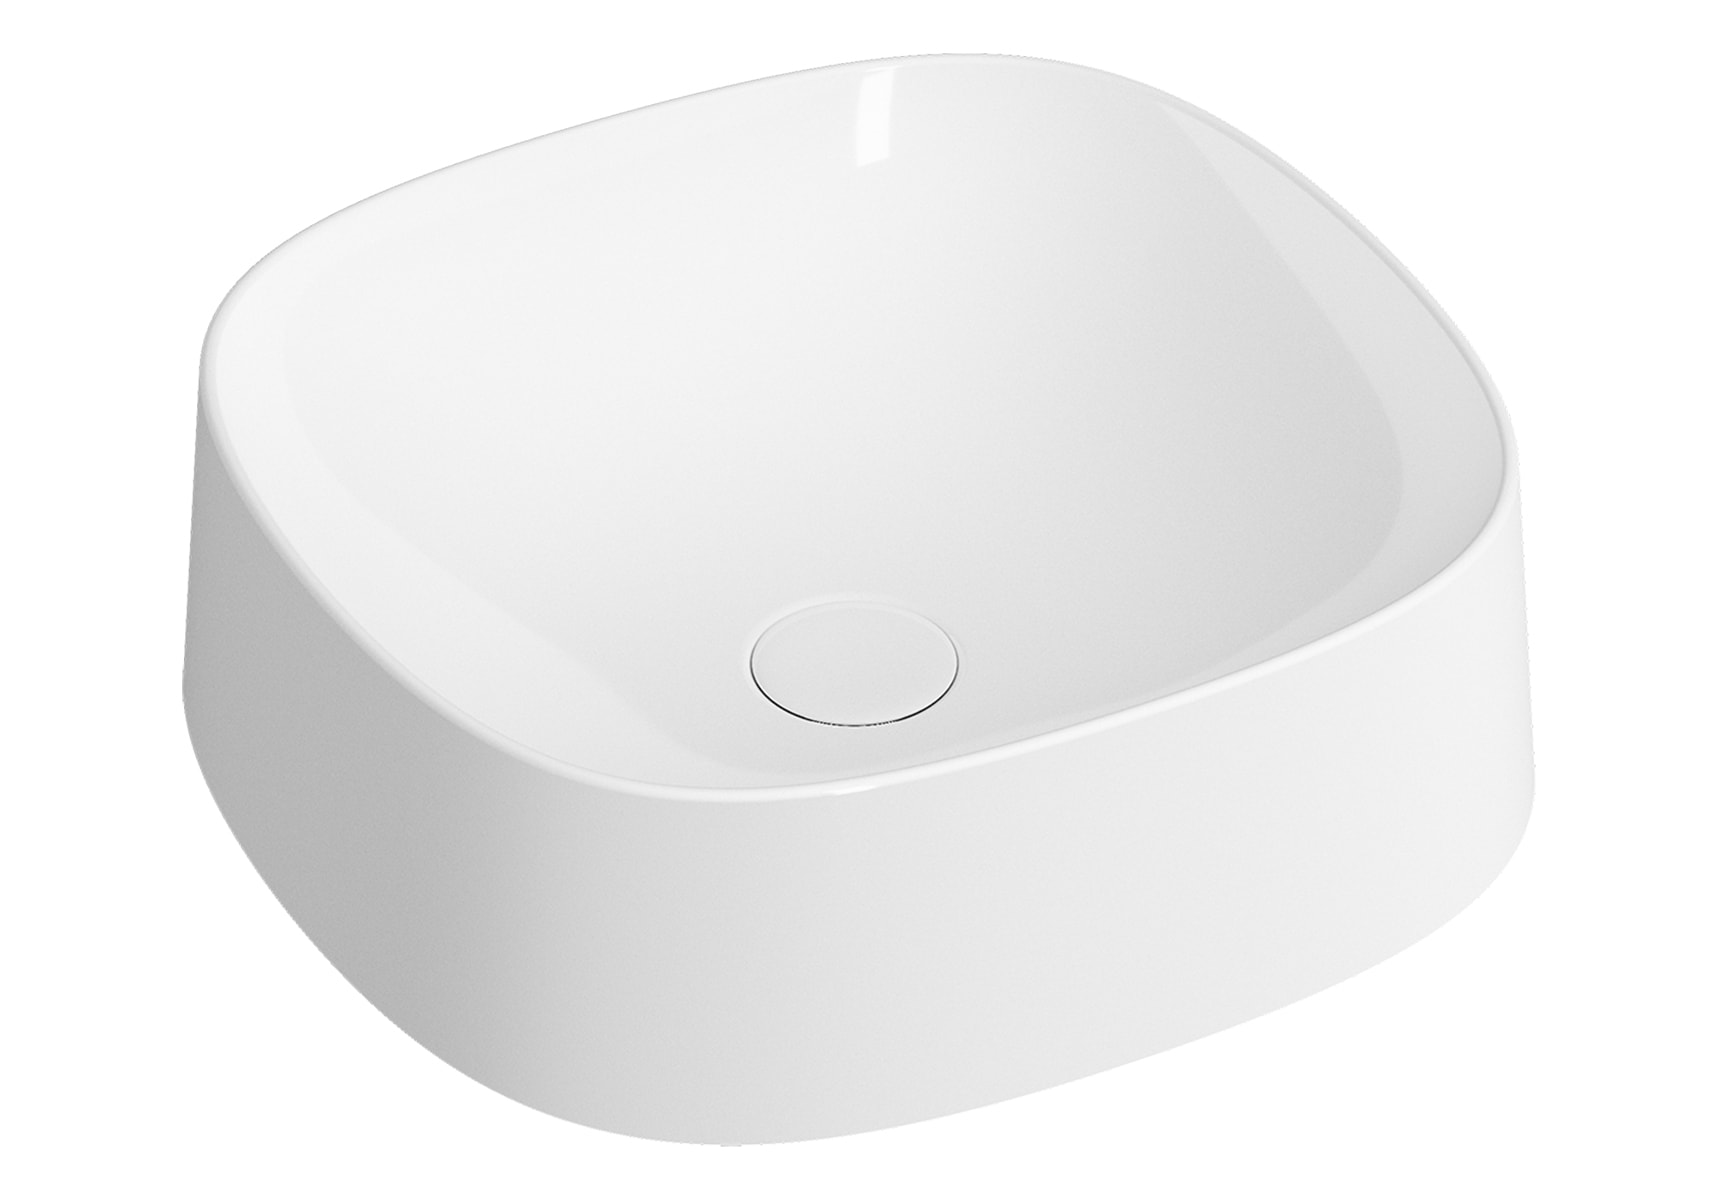 Square Bowl Sink, 40 cm